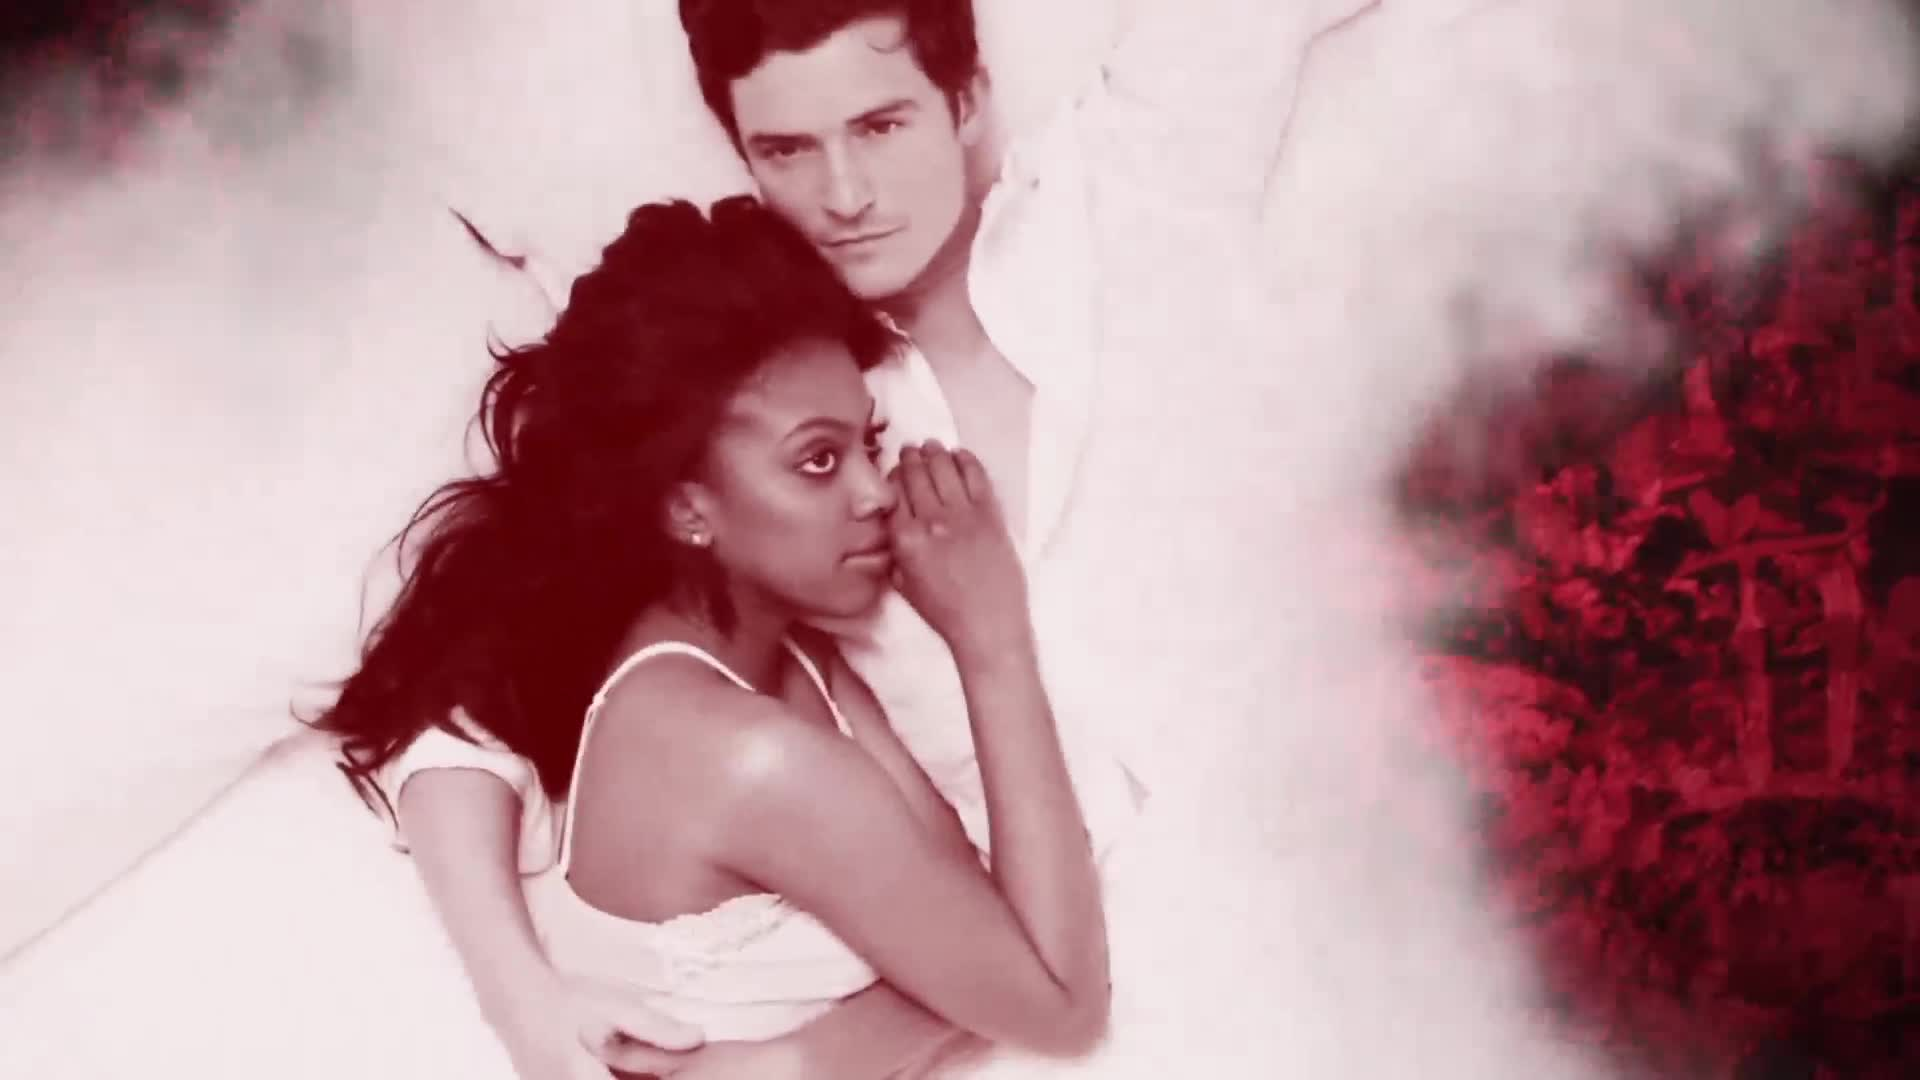 This February, national cinema advertising leader and alternative content provider Screenvision and newly formed company BroadwayHD bring the Broadway production of Romeo and Juliet to movie theatres nationwide. Starring Orlando Bloom as Romeo and Condola Rashad as Juliet, the film has an exclusive run in movie theatres from February 13-19. Tickets are available at www.BroadwayHD.com.